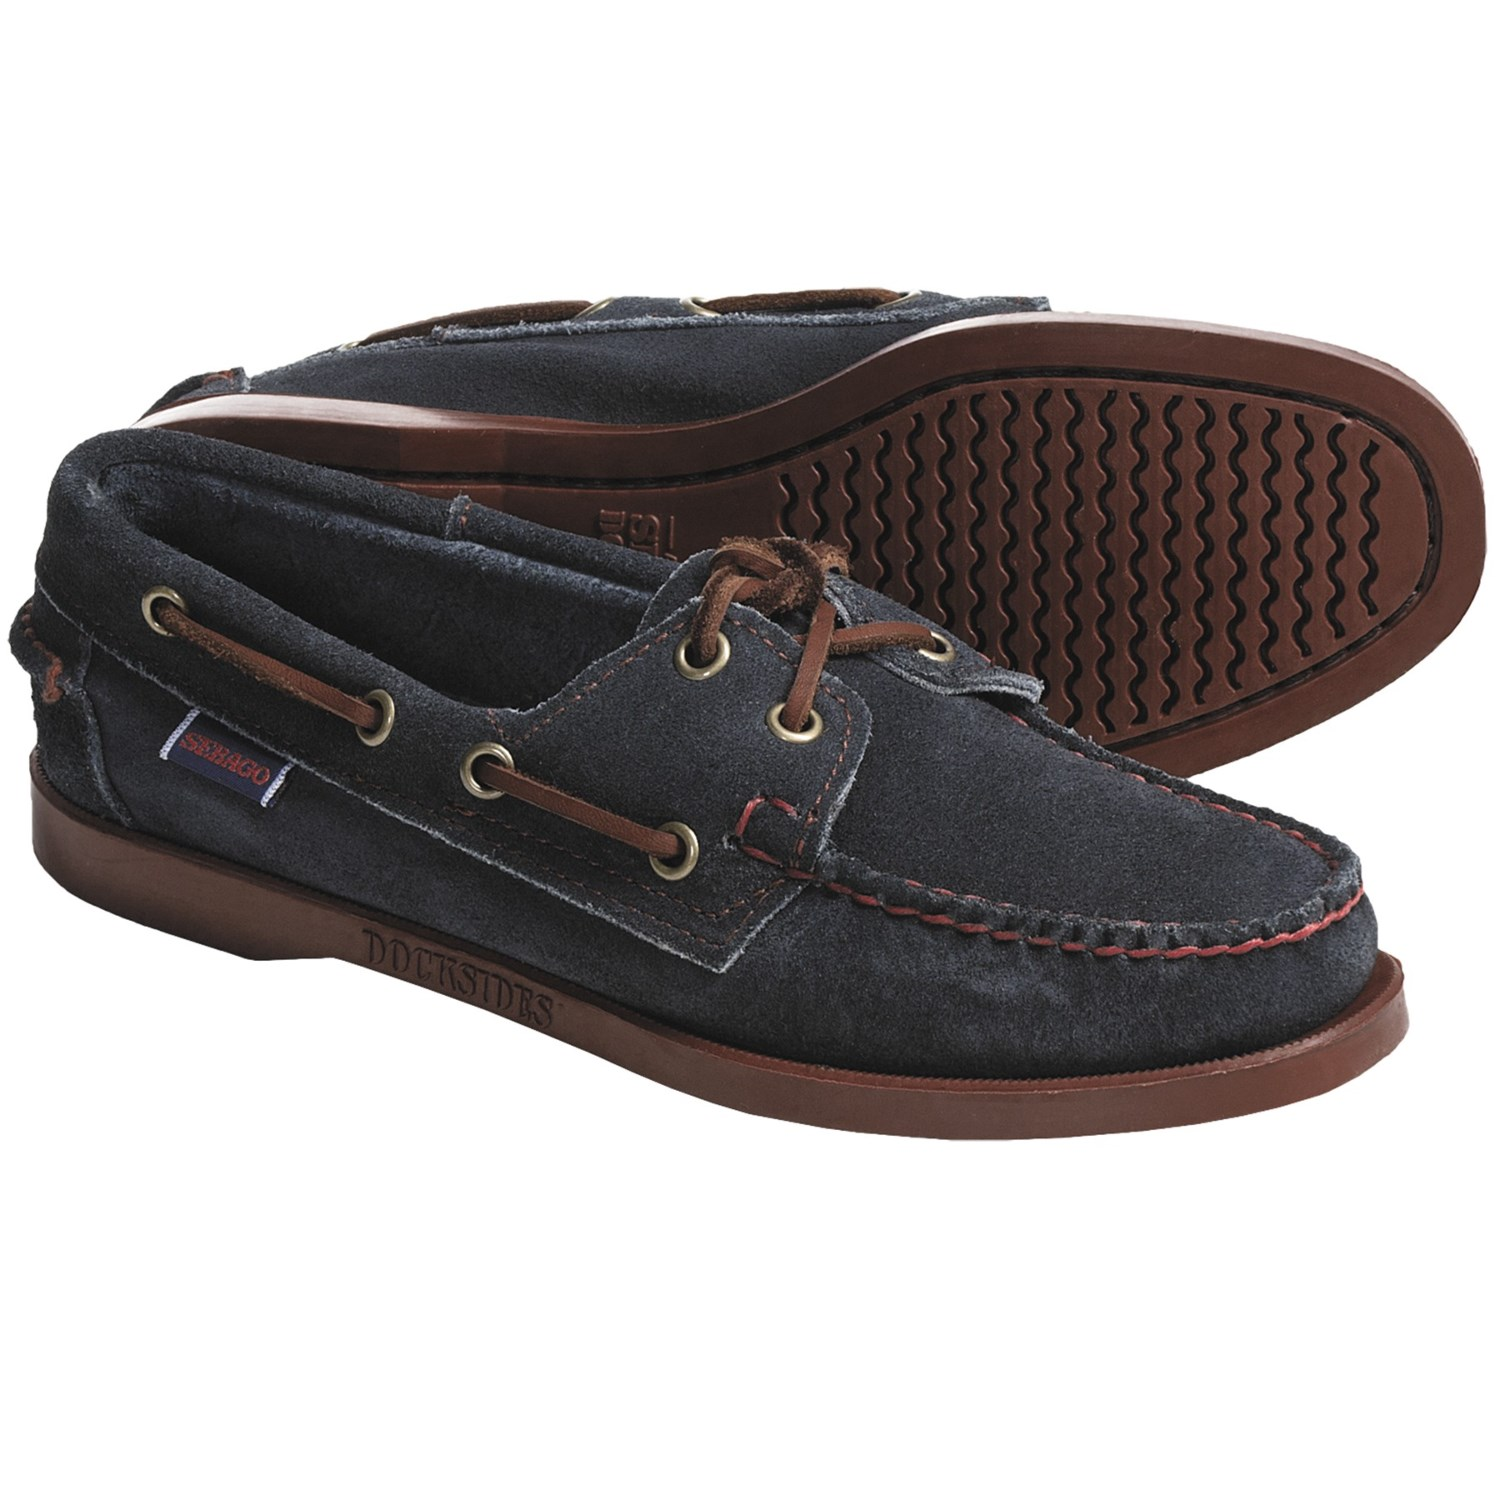 sebago docksides boat shoes leather for save 36